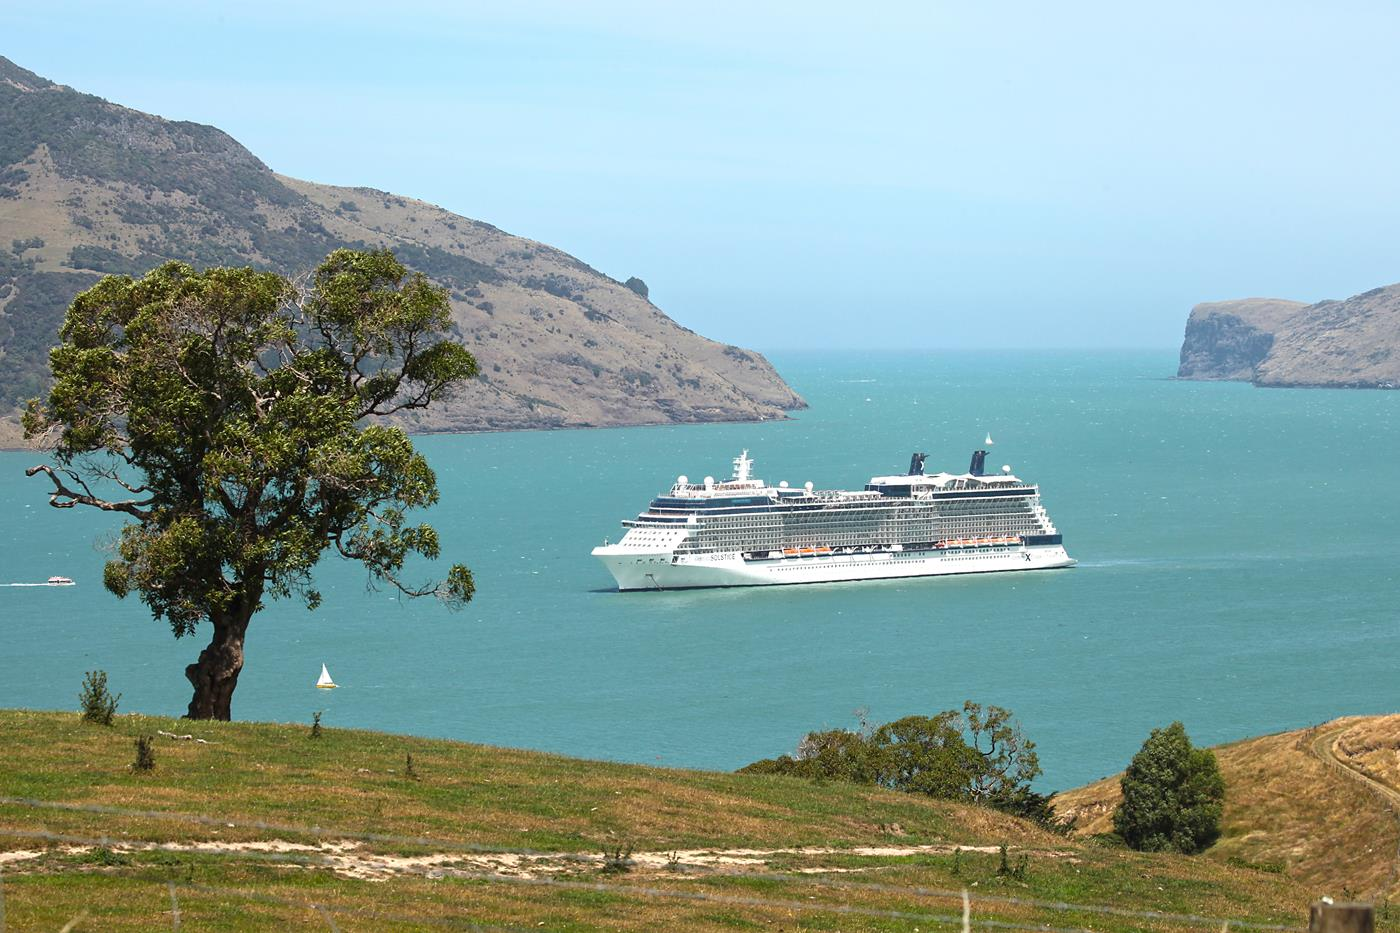 A cruise ship in the harbour